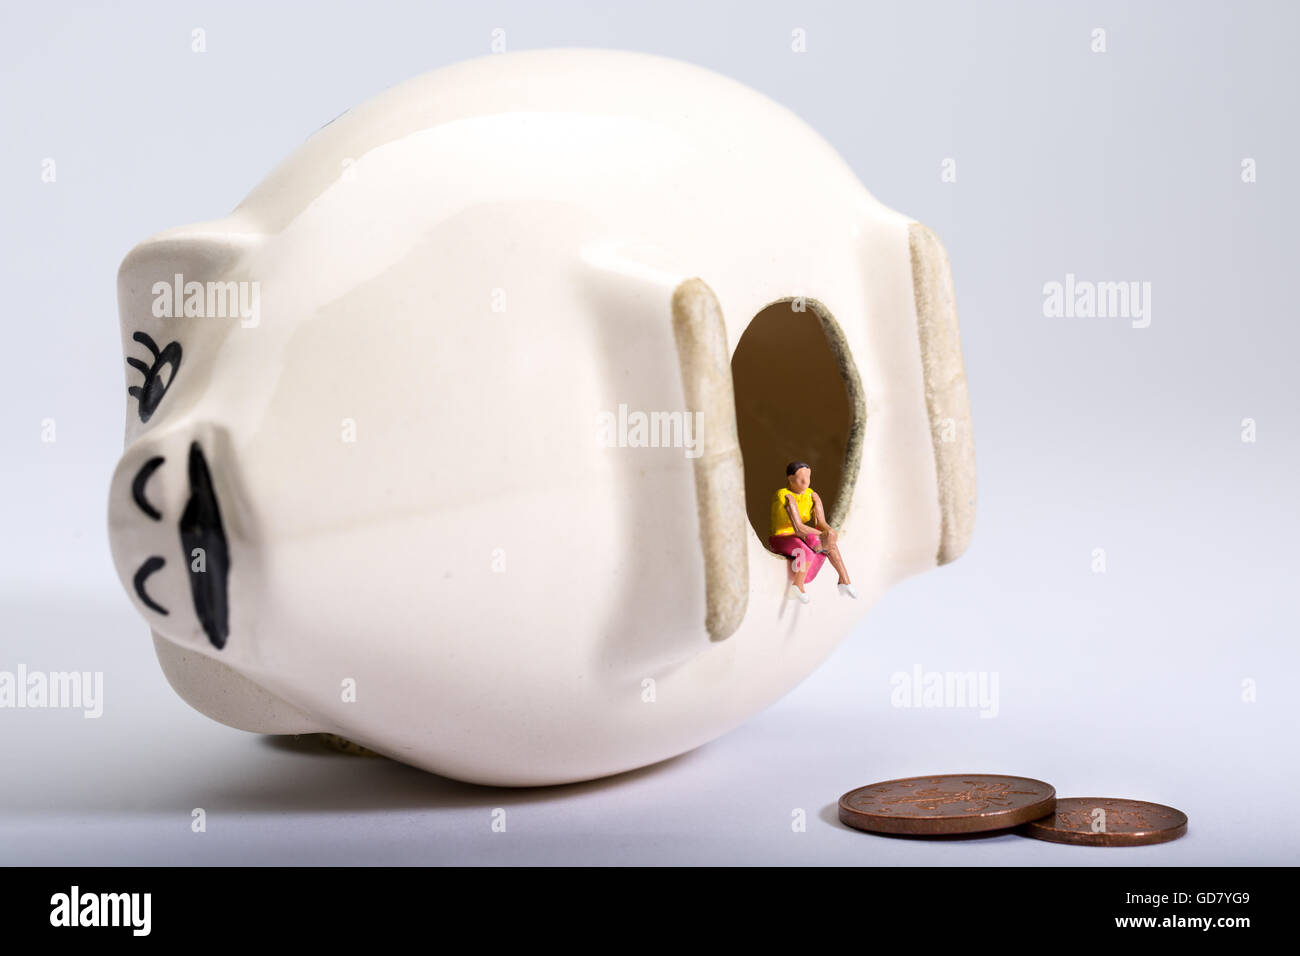 concept image of a lone figure with an empty piggy bank to illustrate low savings and low interest rates on savings - Stock Image